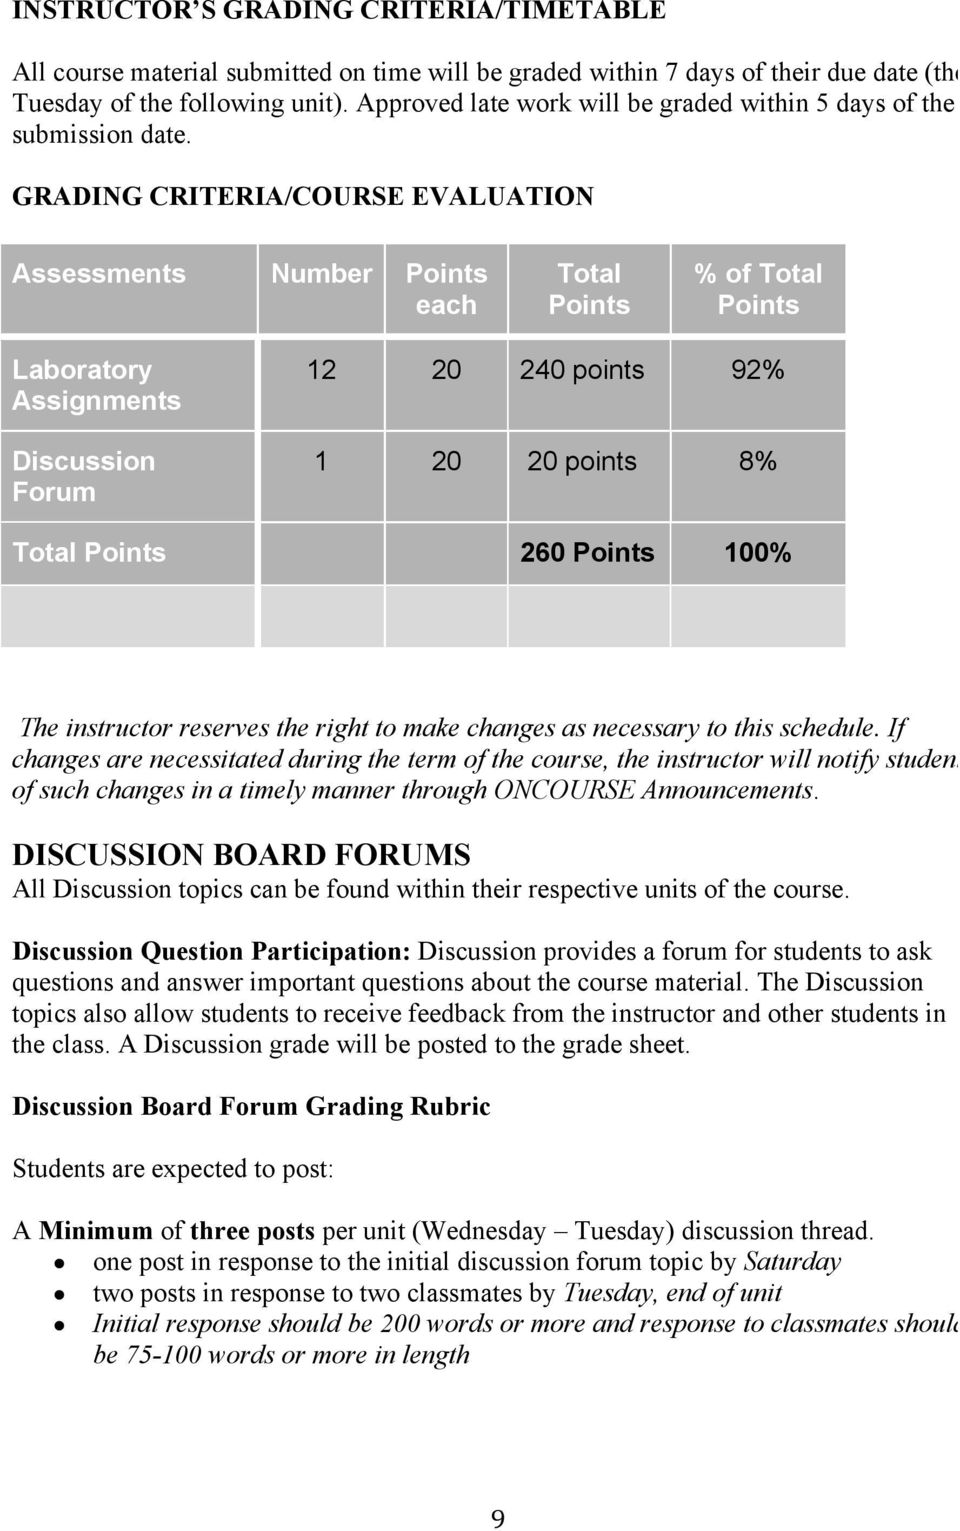 GRADING CRITERIA/COURSE EVALUATION Assessments Number Points each Total Points % of Total Points Laboratory Assignments Discussion Forum 12 20 240 points 92% 1 20 20 points 8% Total Points 260 Points